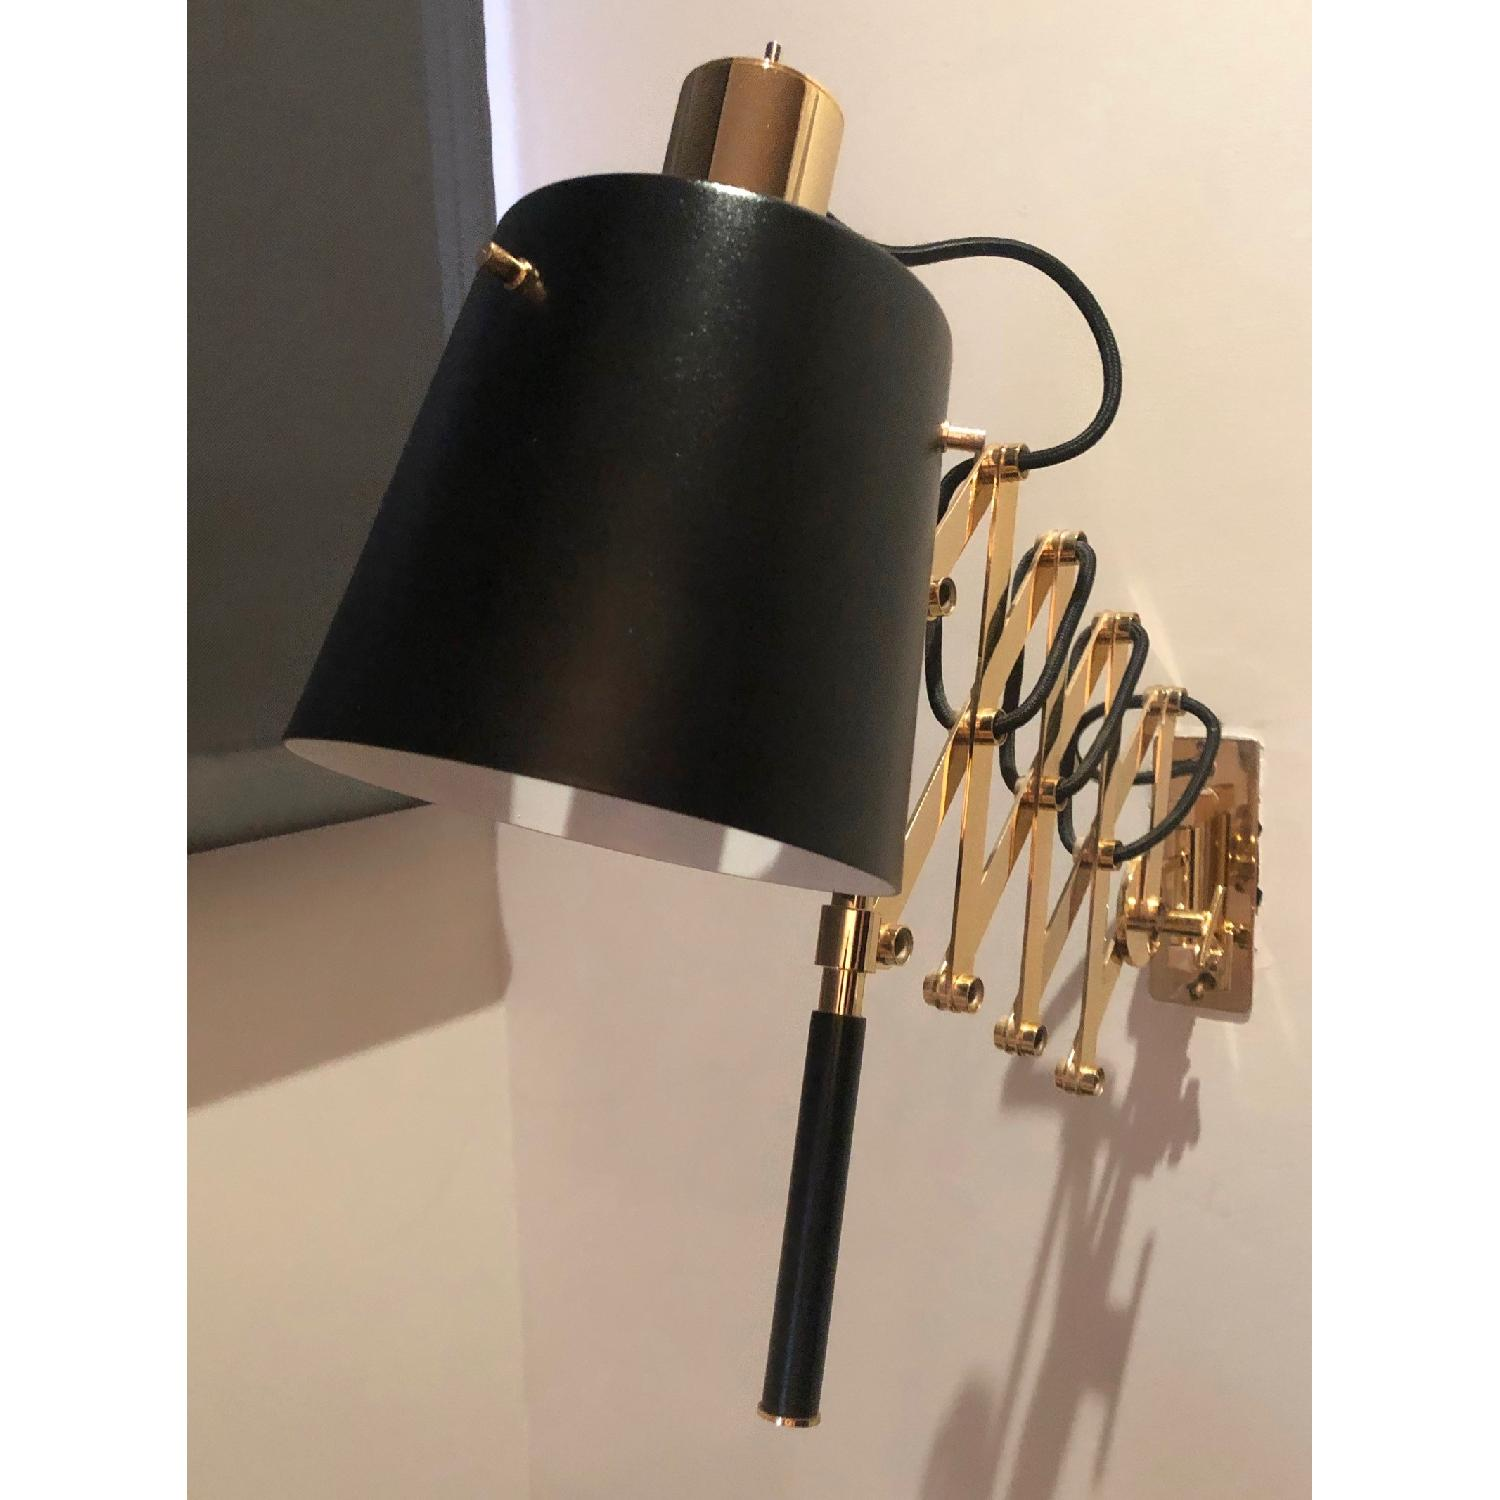 Delighttfull Pastorius Wall Lamps in Gold/Black-8